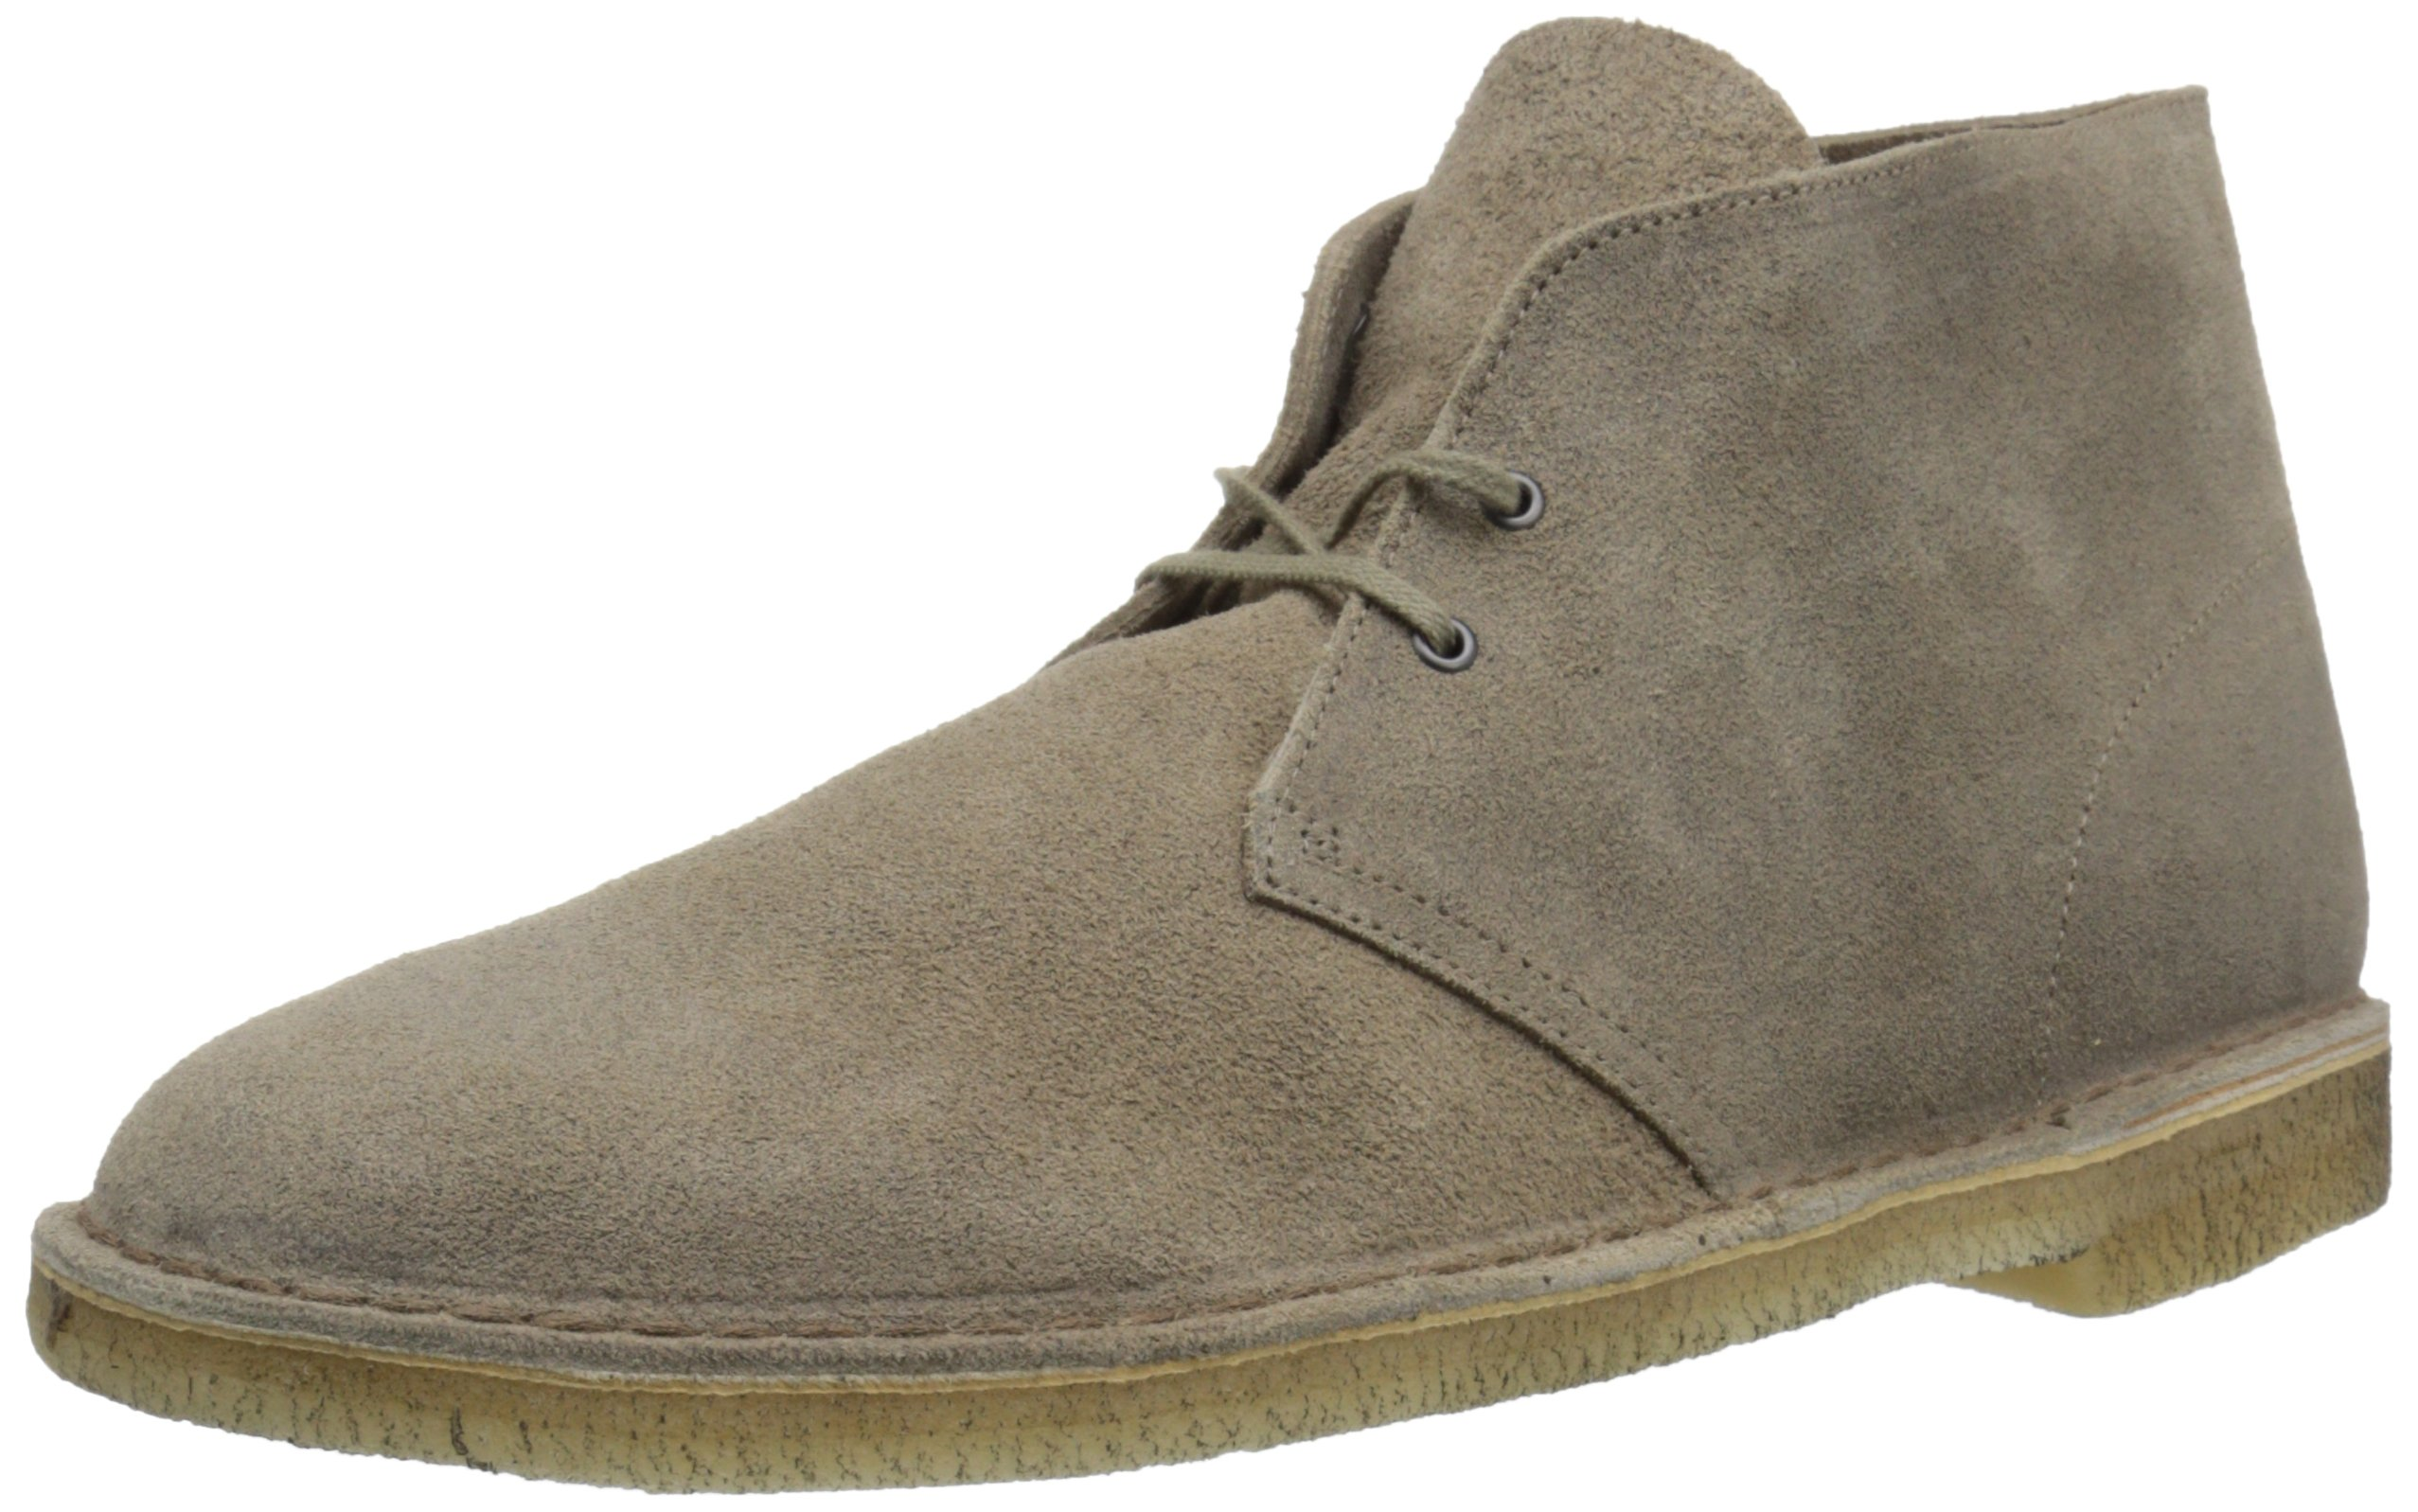 CLARKS Men's Desert Chukka Boot, Taupe Suede, 12 Medium US by CLARKS